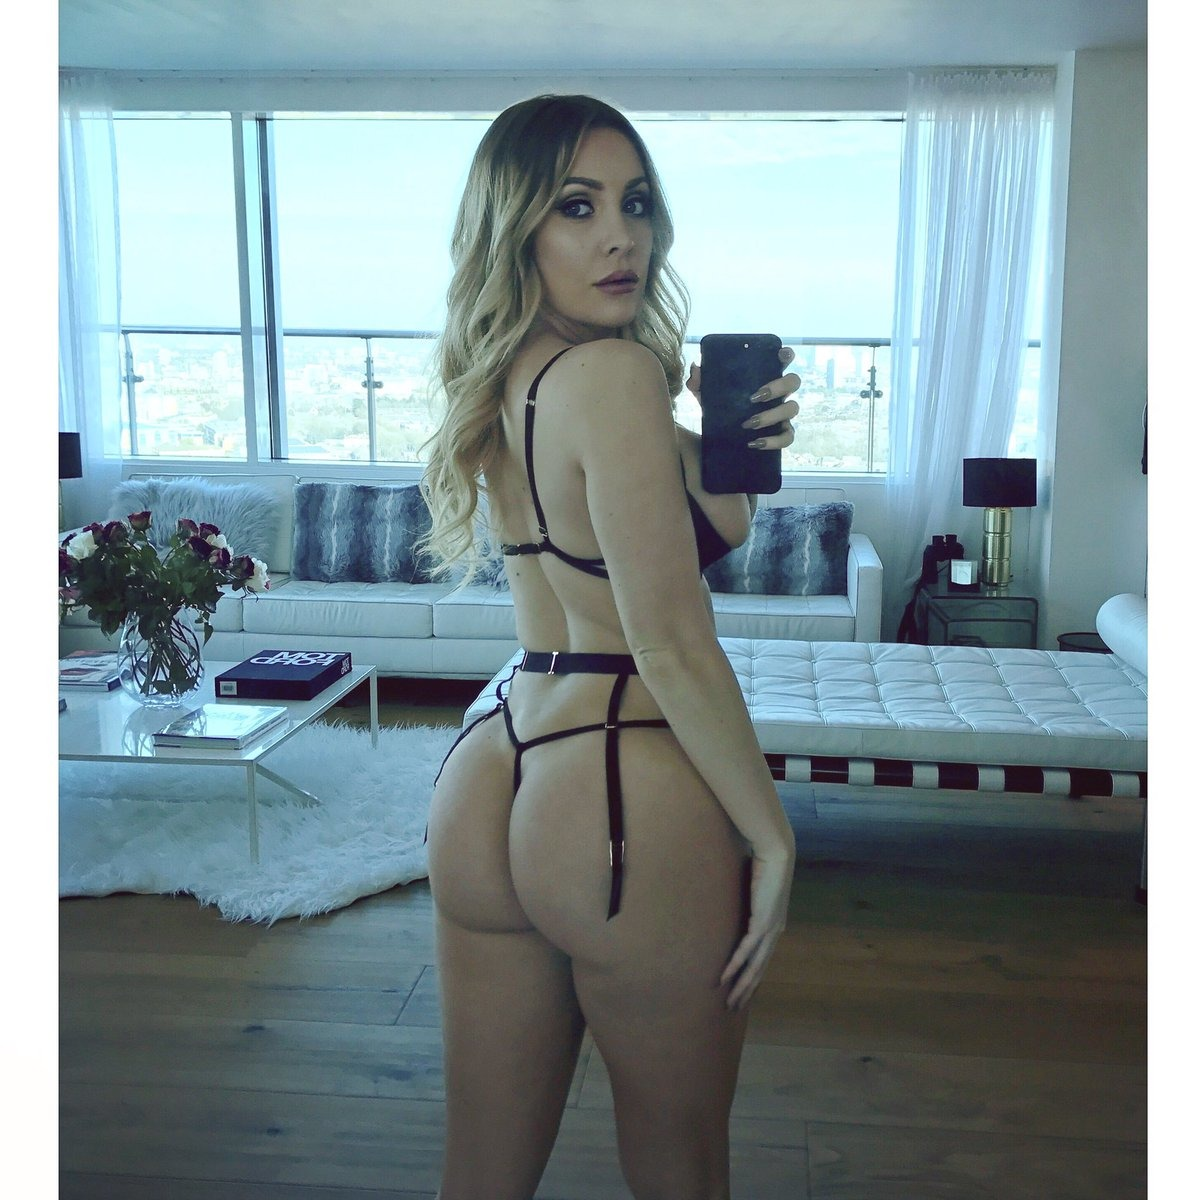 Ashley Emma standing mirror selfie of her figure from behind showing her bum in white and black lingerie and suspenders